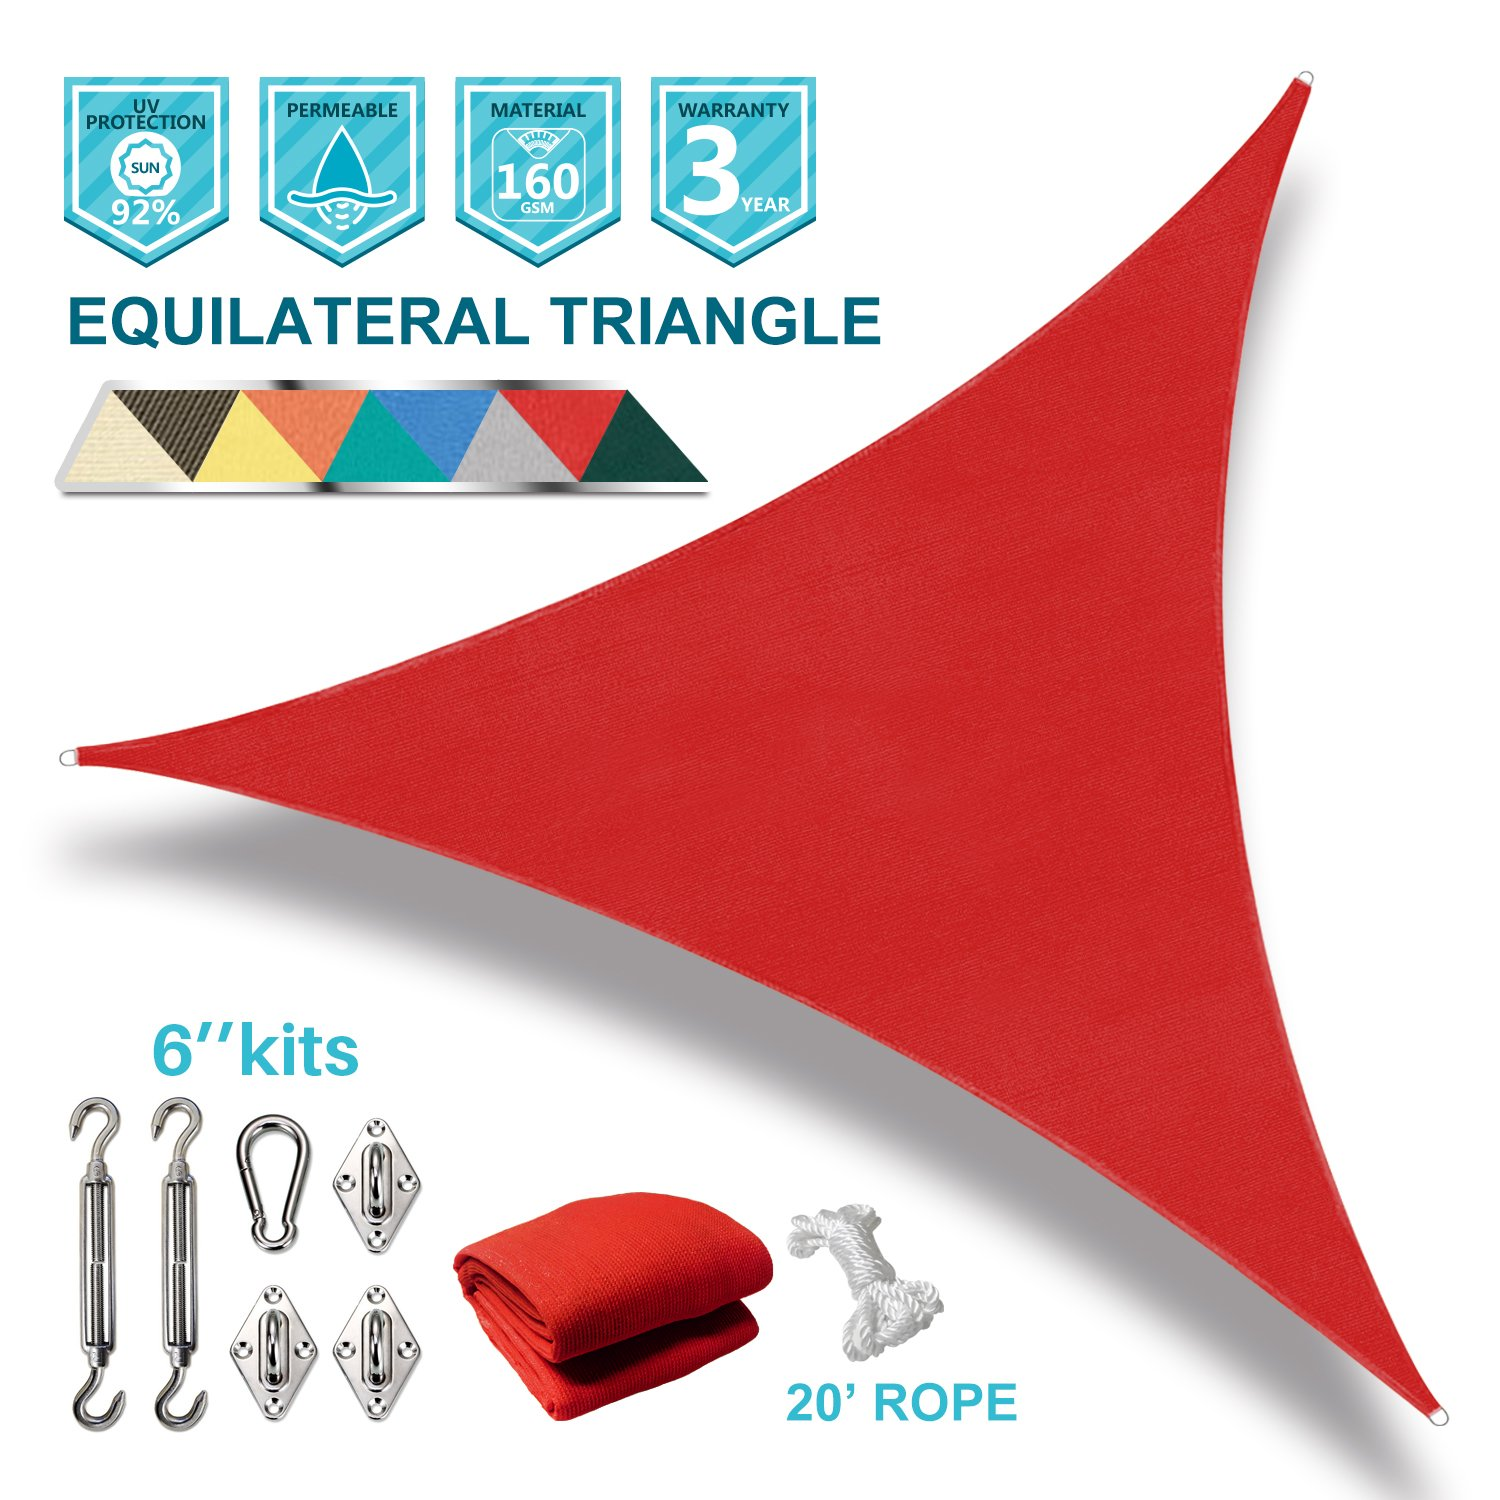 Coarbor 8'x8'x8' Triangle Sun Shade Sail with Hardware kit Perfect for Patio Deck Yard Outdoor Garden Permeable UV Block Shade Cover-Red